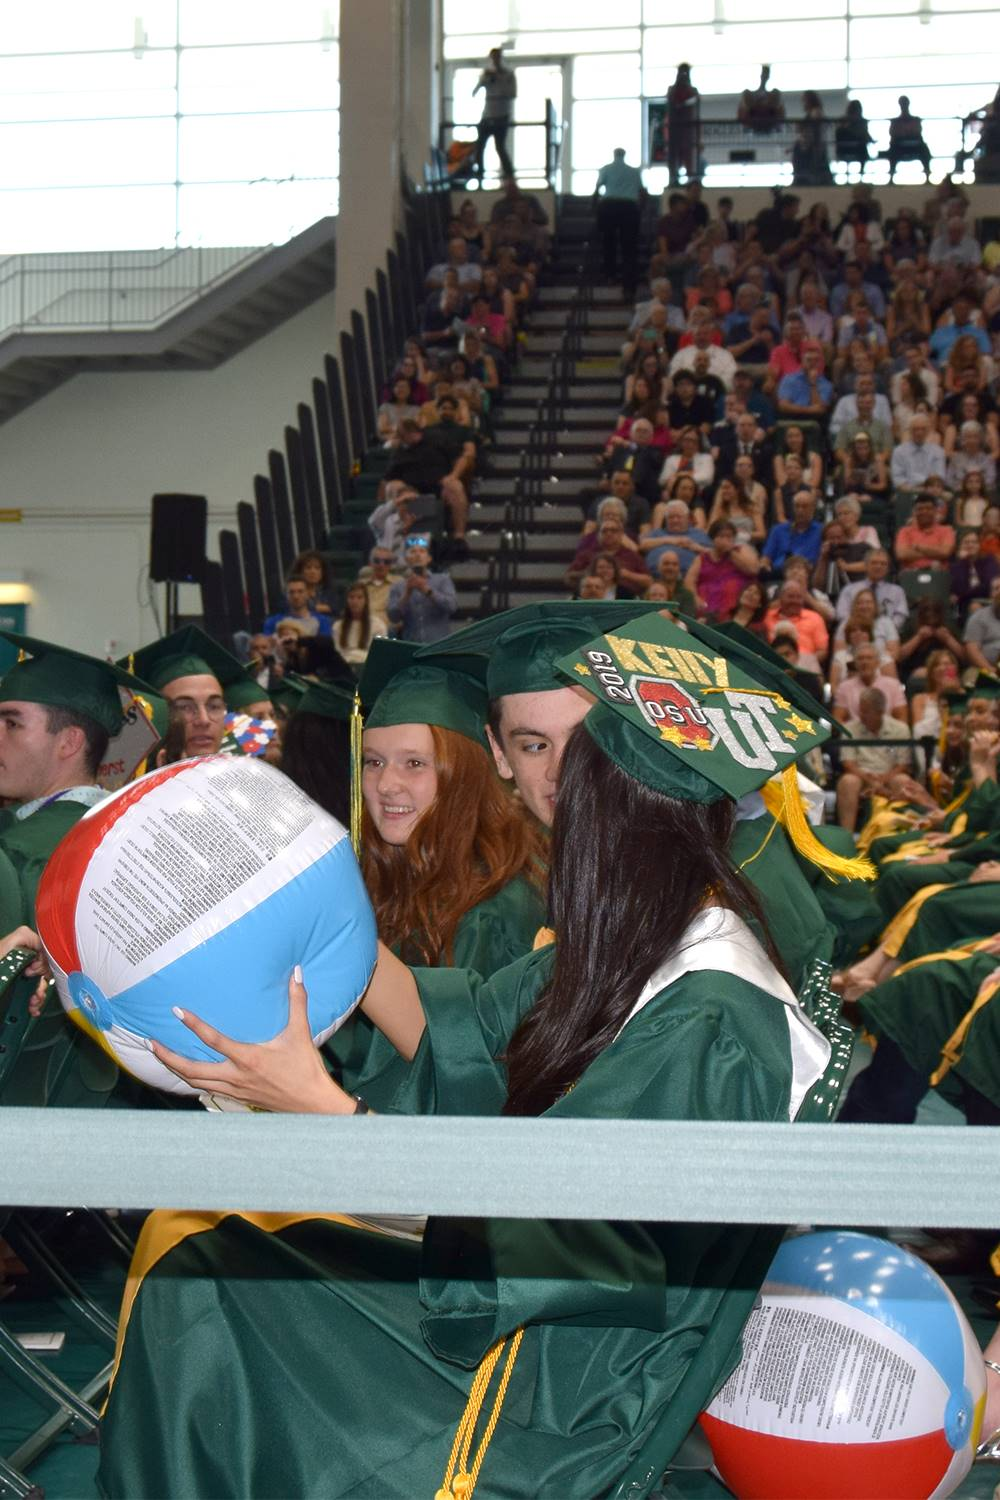 A Vestal High School graduation candidate holds a red, white and blue beach ball, ready to toss it.